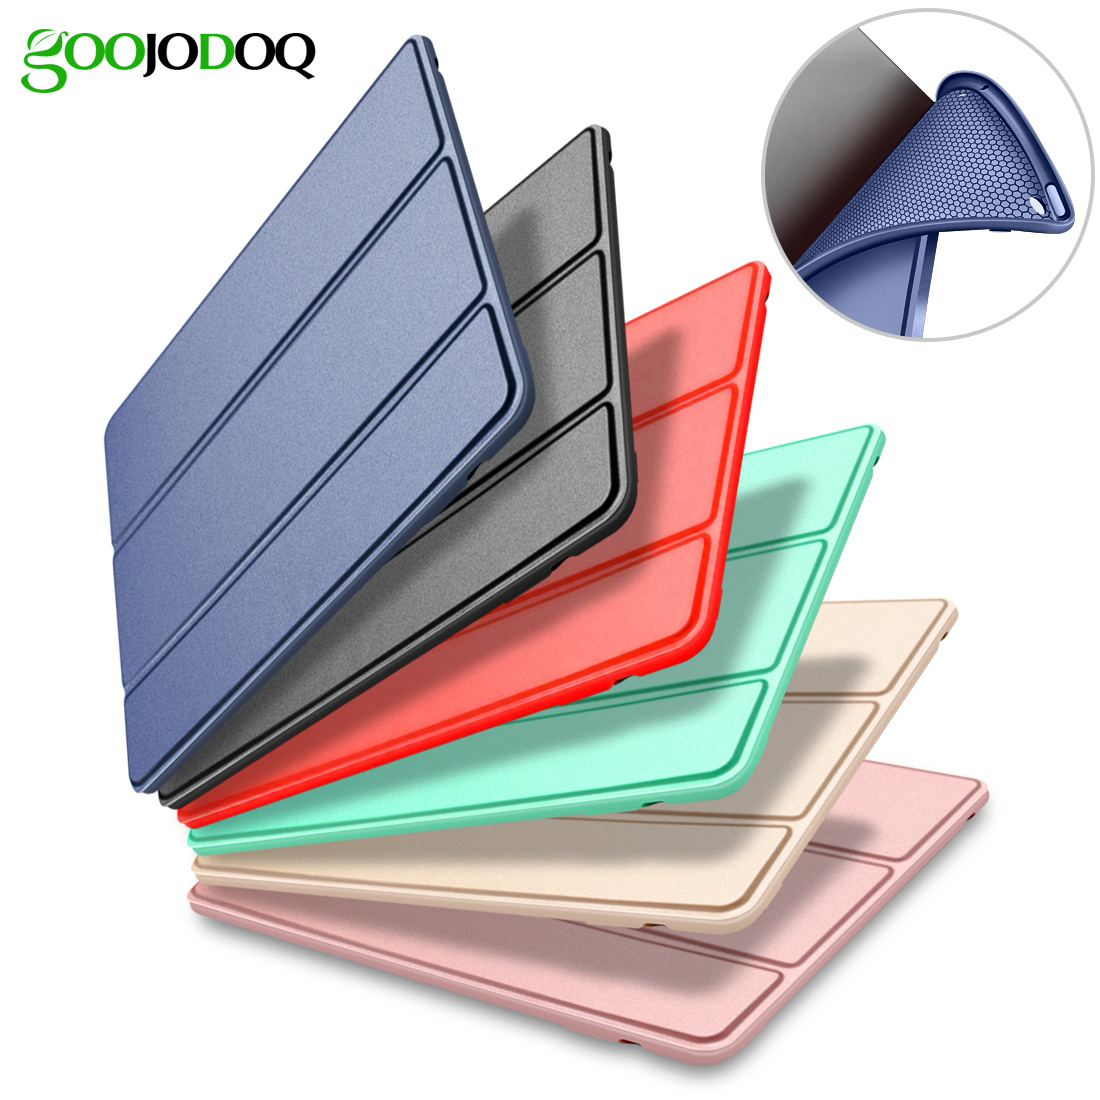 Case for iPad Mini 4 3 2 1 Case PU Leather Silicone Soft Back Trifold Stand Auto Sleep/Wake up Smart Cover for iPad Mini 2 Case nice soft silicone back magnetic smart pu leather case for apple 2017 ipad air 1 cover new slim thin flip tpu protective case